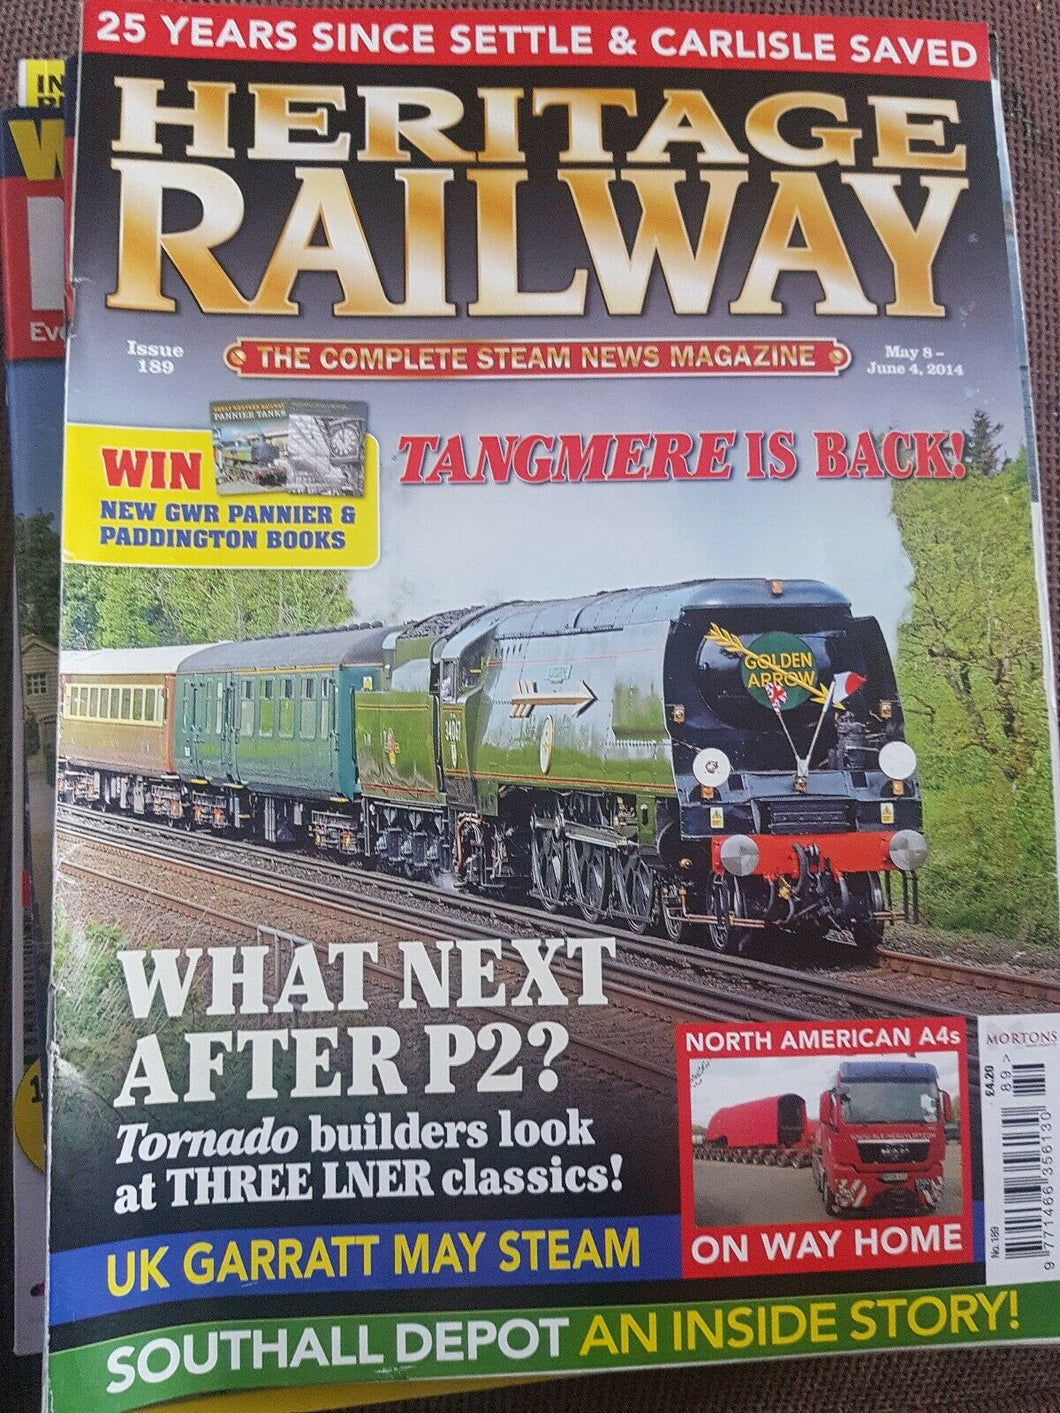 Heritage railway May May and June 2014